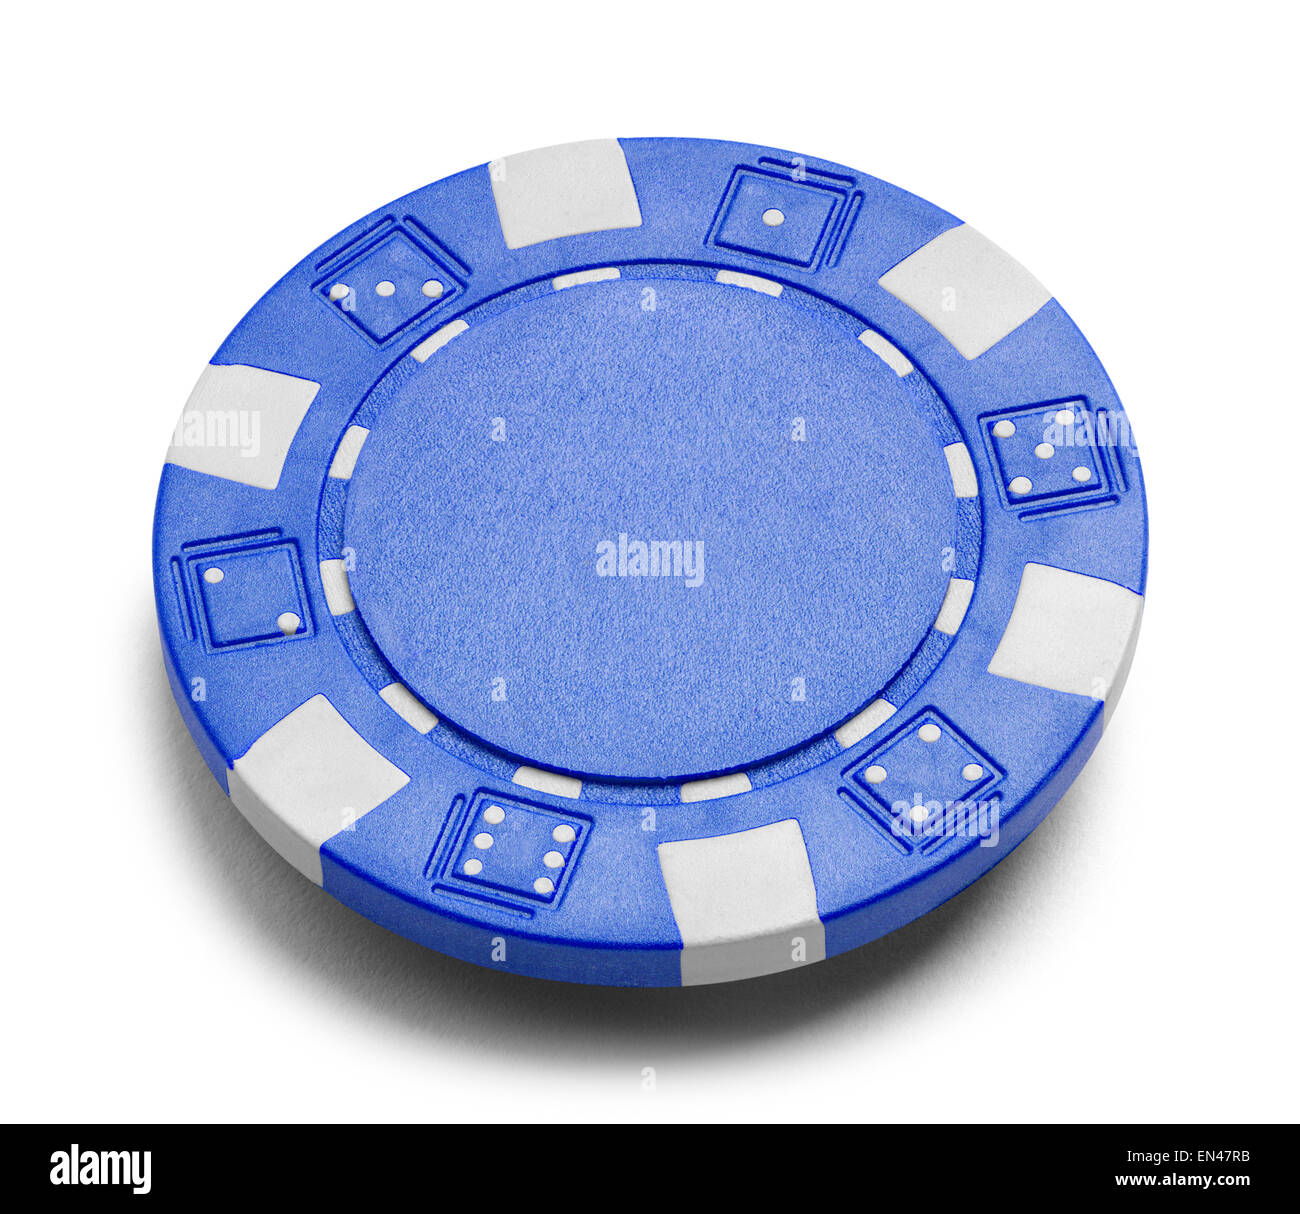 Blue Poker Chip with Copy Space Isolated on a White Background. - Stock Image